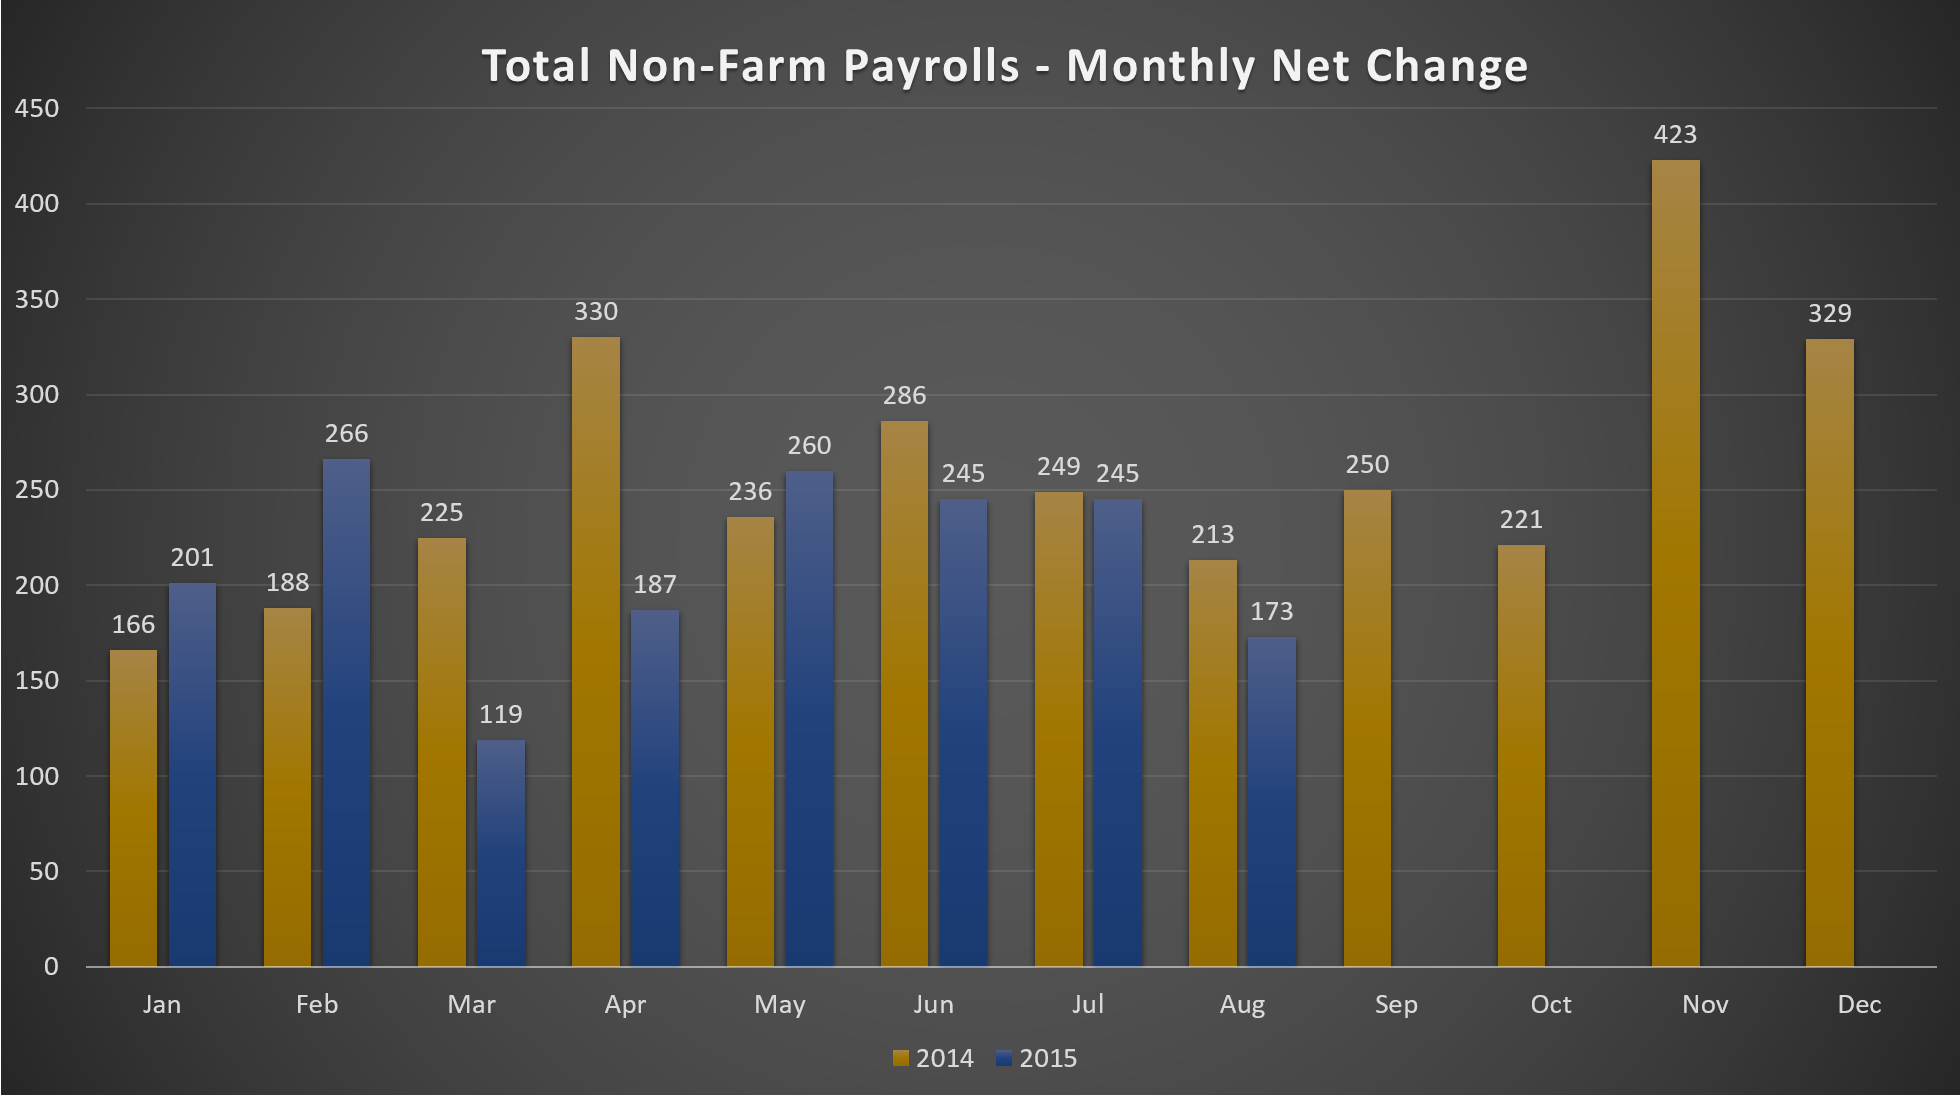 Total Non-Farm Payrolls - Monthly Net Change